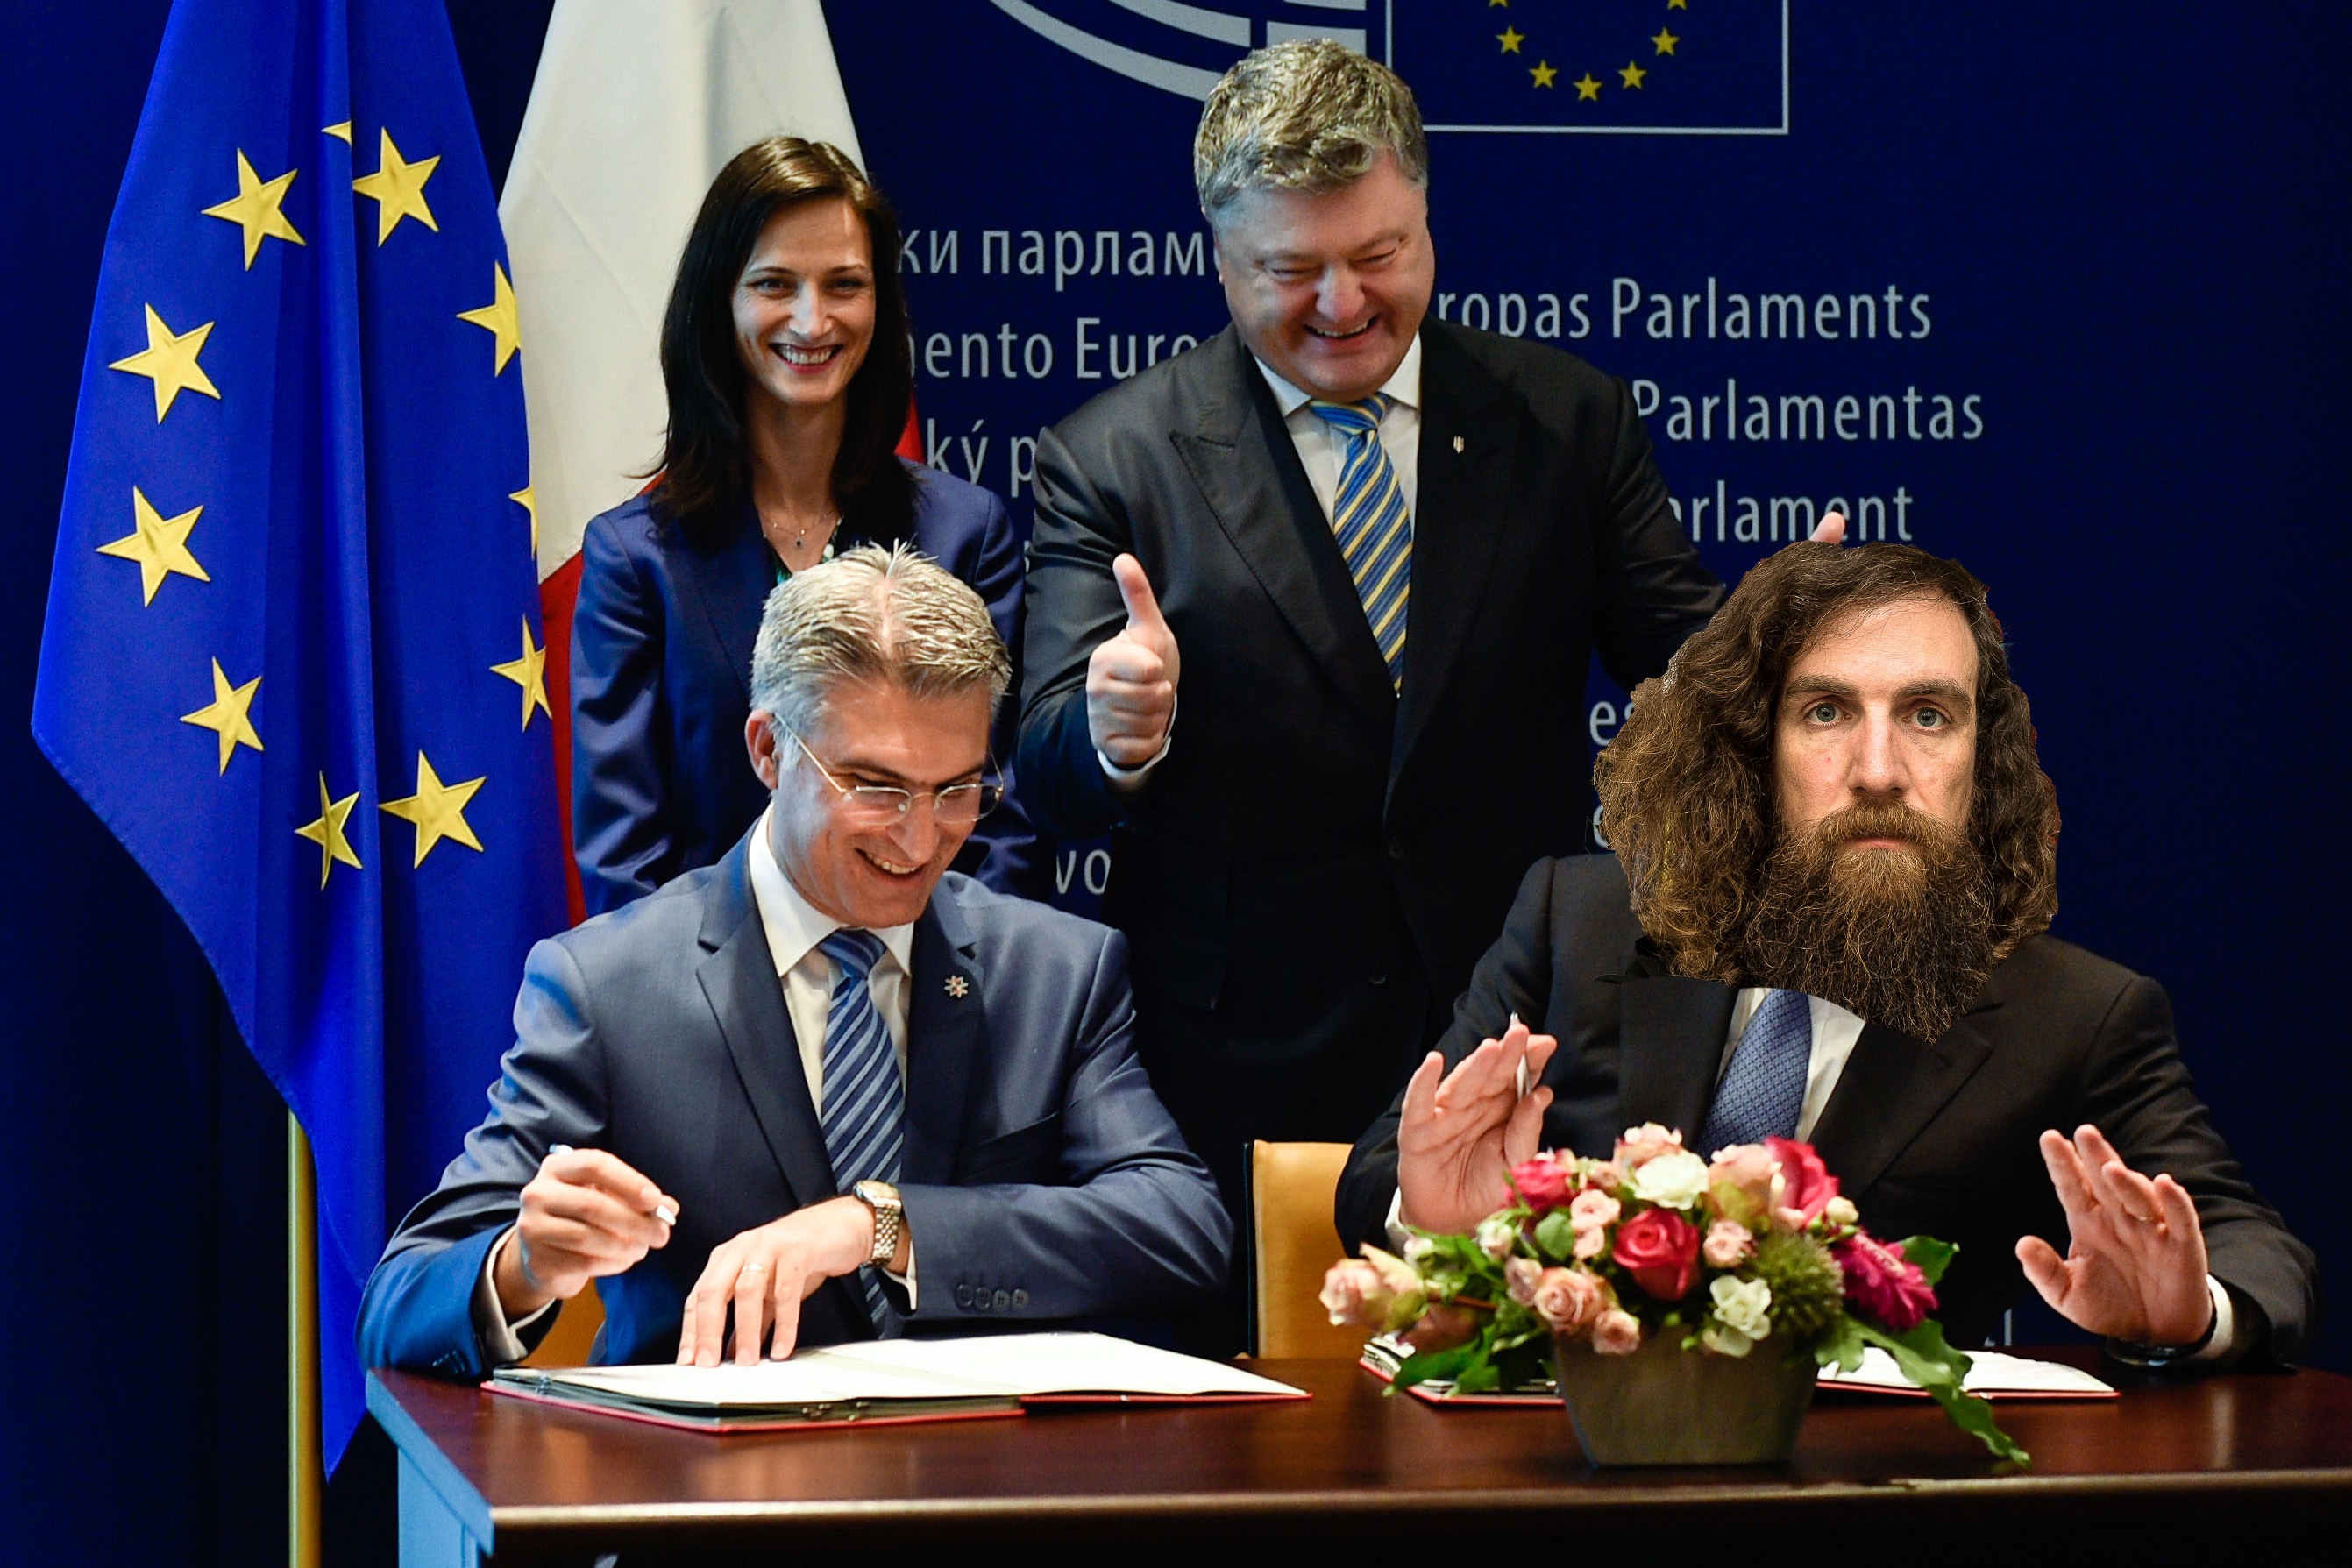 Solemn_ceremony_of_signing_the_document_on_visa_liberalisation_with_the_EU_for_Ukrainians_03 (1) copy 3×2